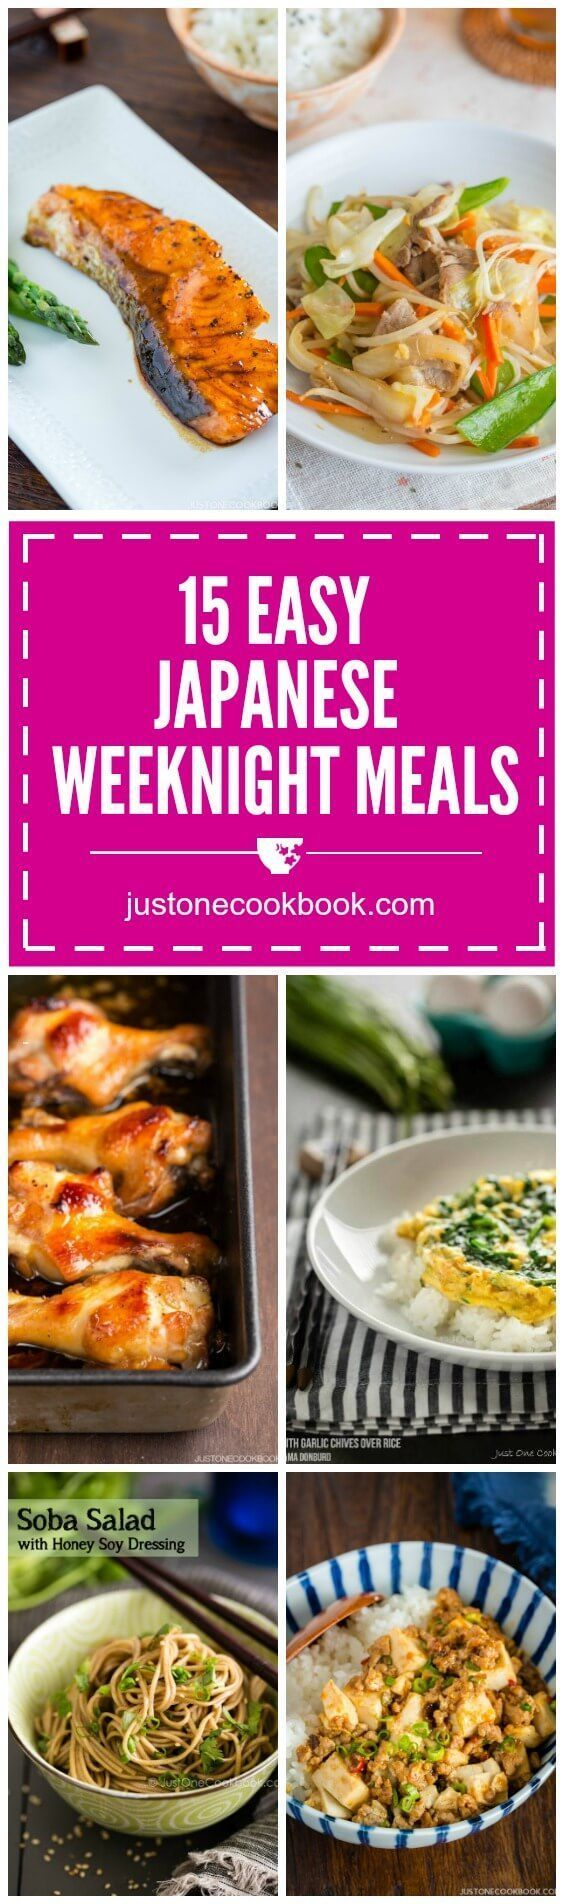 Weeknight meal ideas 15 easy japanese recipes weeknight meals weeknight meal ideas 15 easy japanese recipes weeknight meals chinese food recipes and meals forumfinder Images